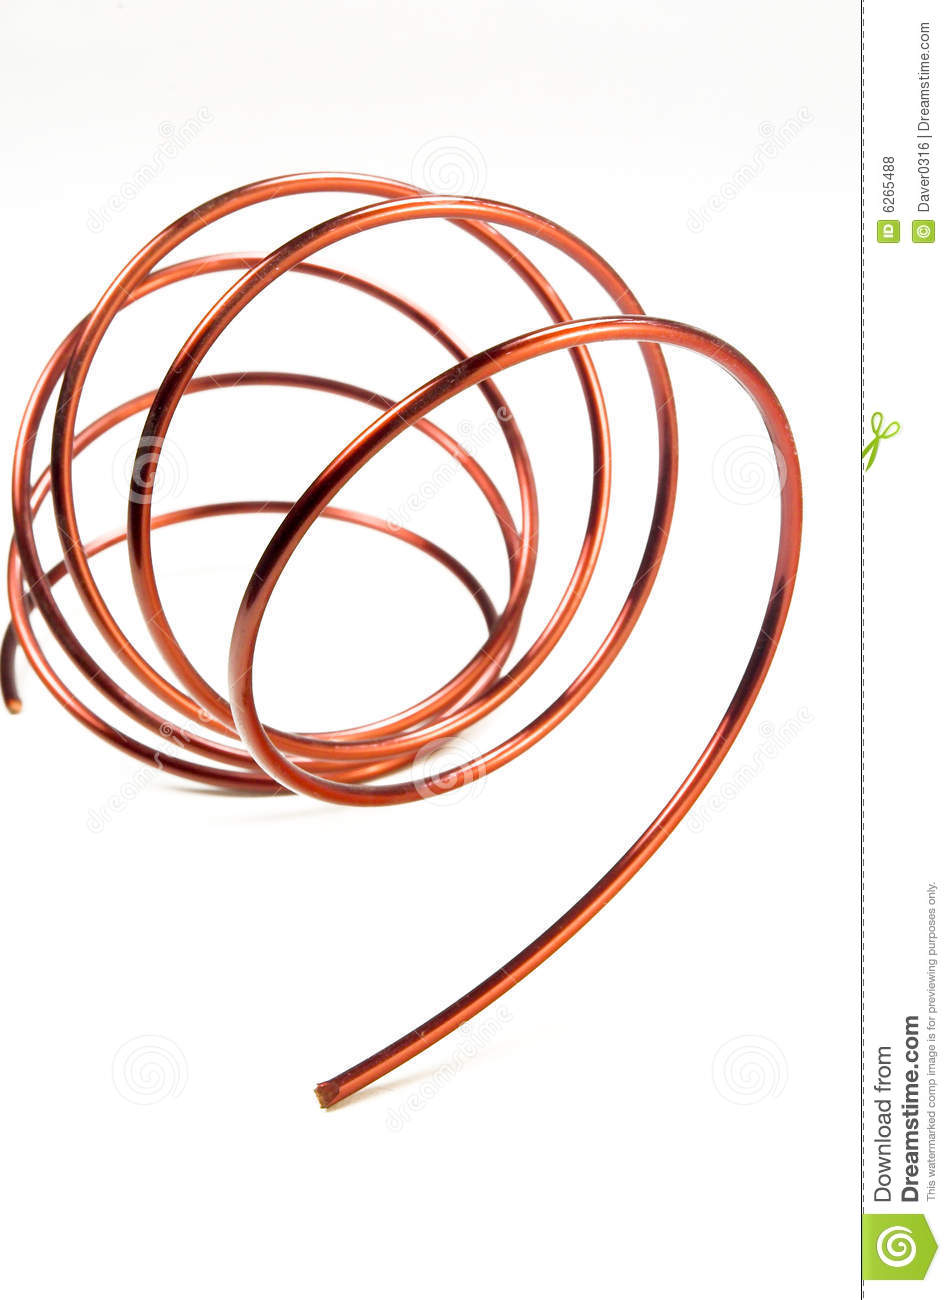 Copper Wire stock photo. Image of conduct, space, electricity - 6265488